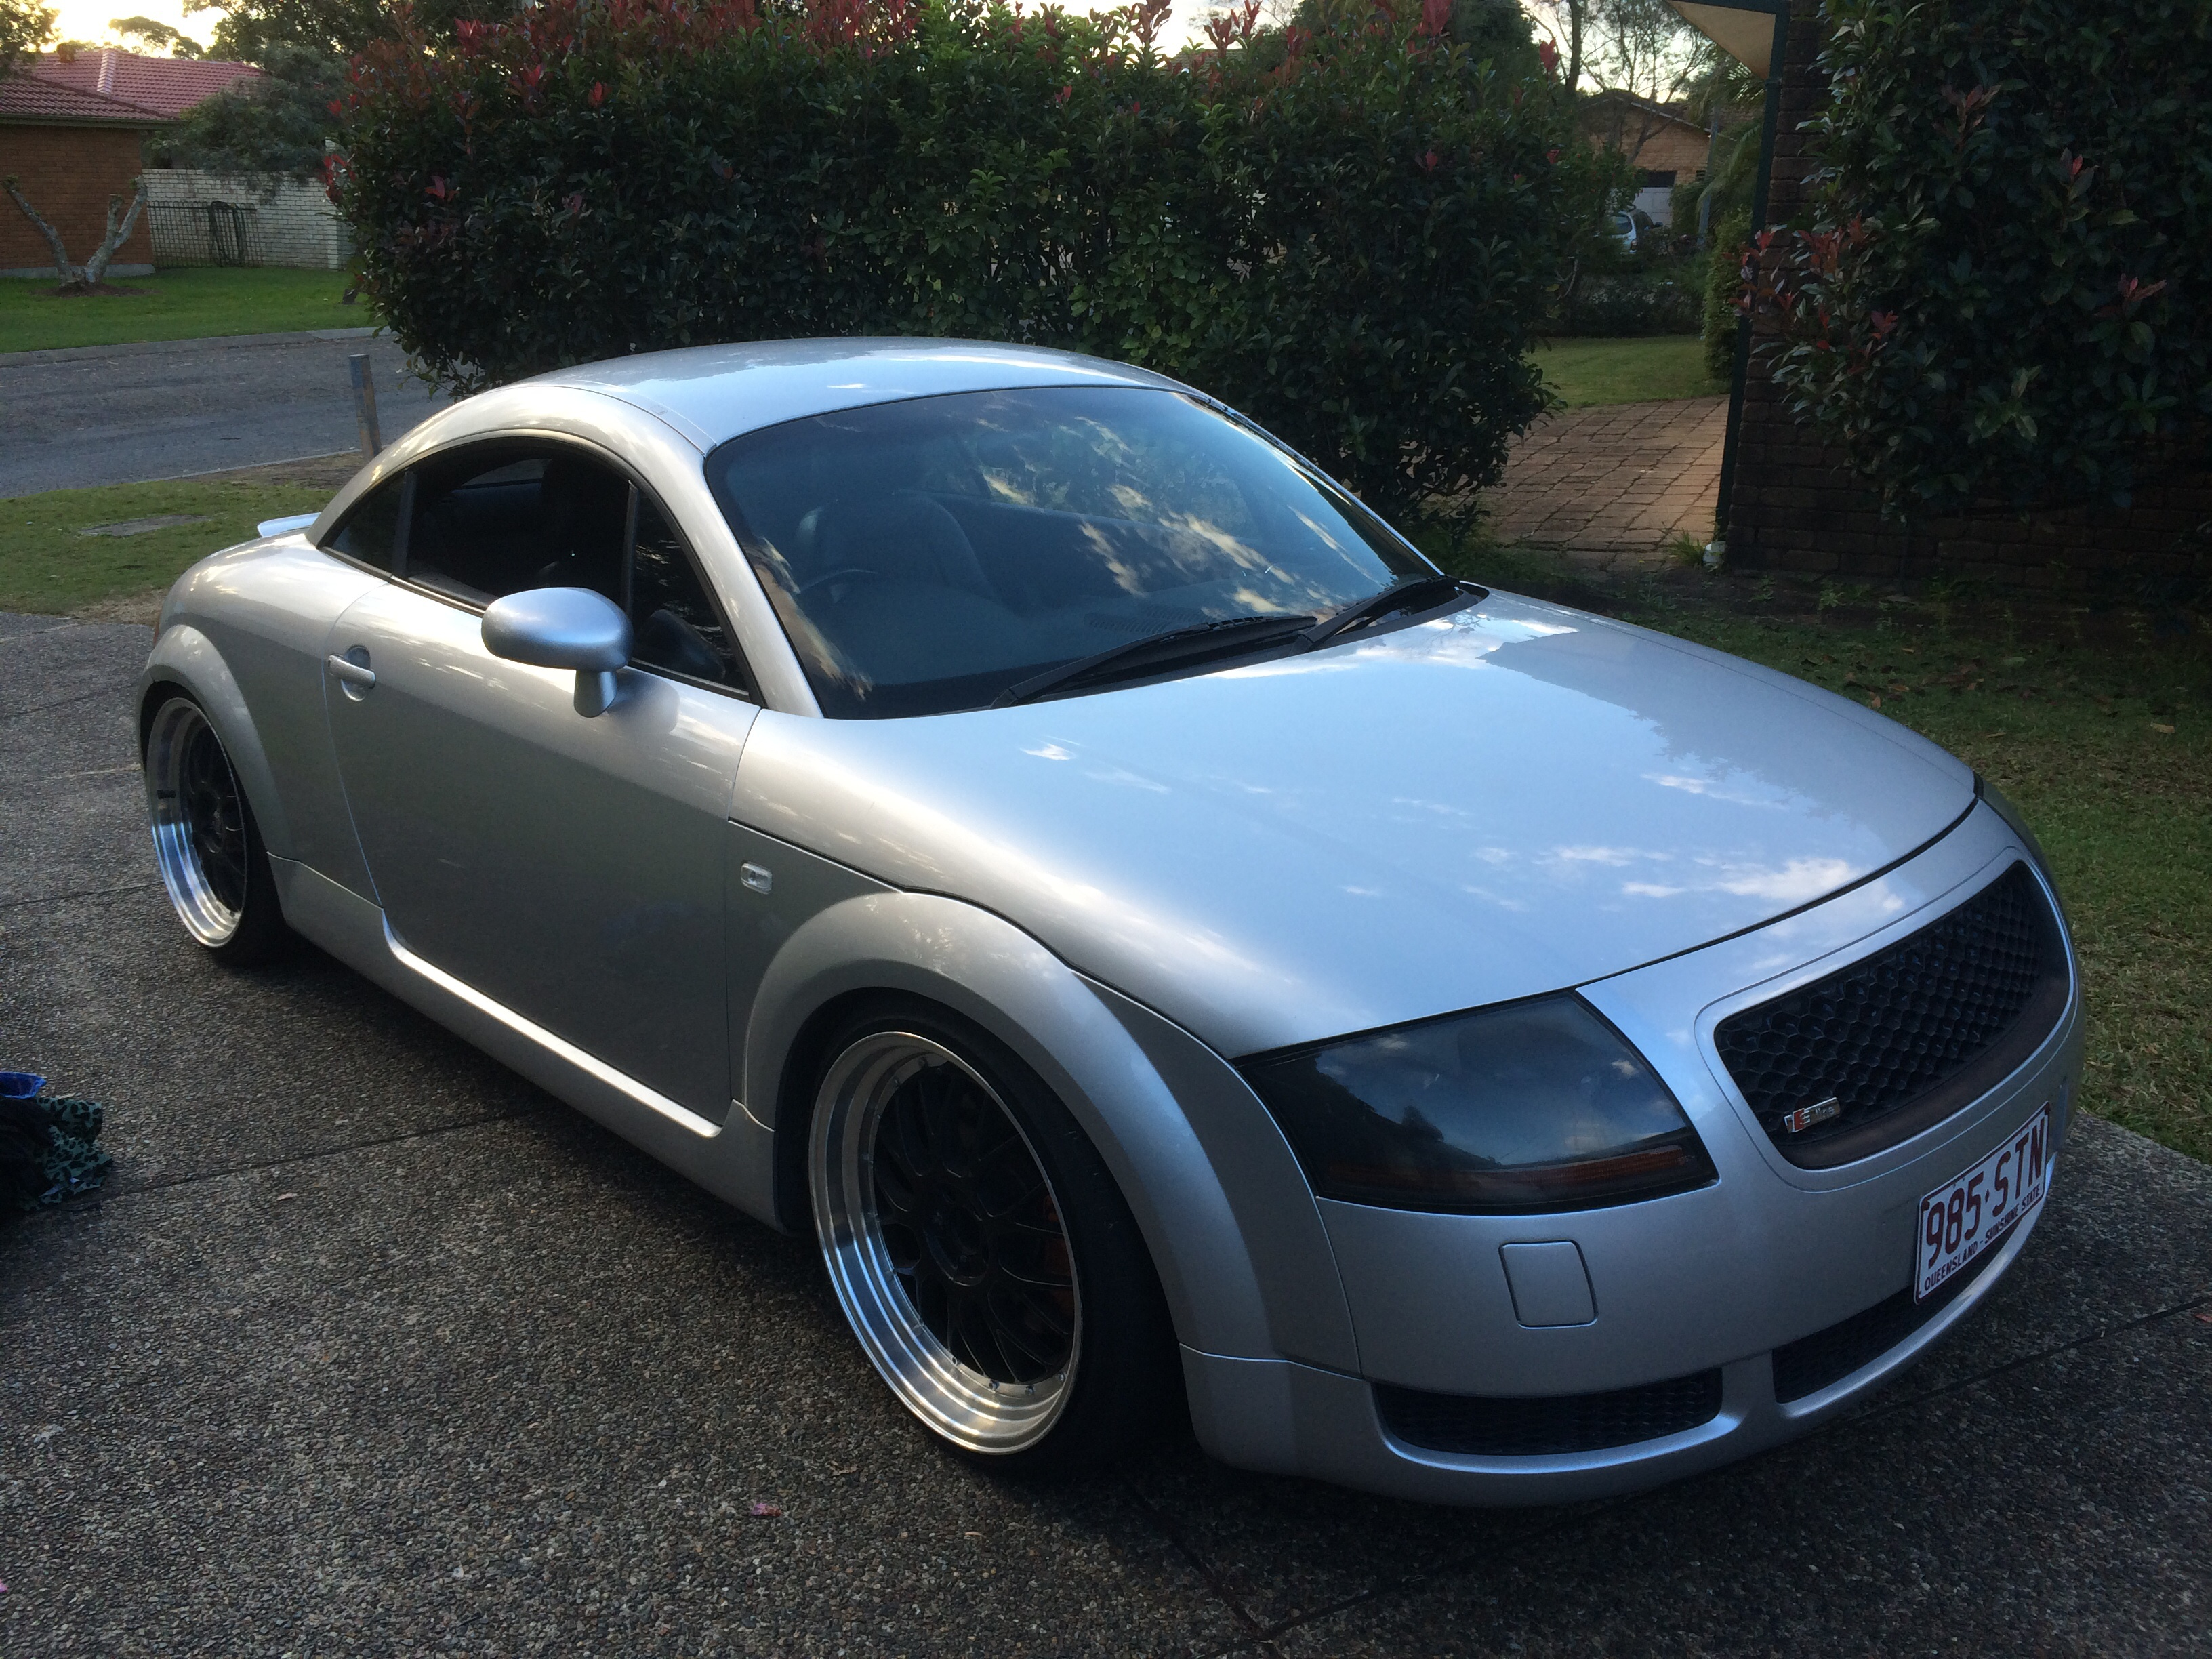 2000 audi tt quattro for sale nsw mid north coast. Black Bedroom Furniture Sets. Home Design Ideas